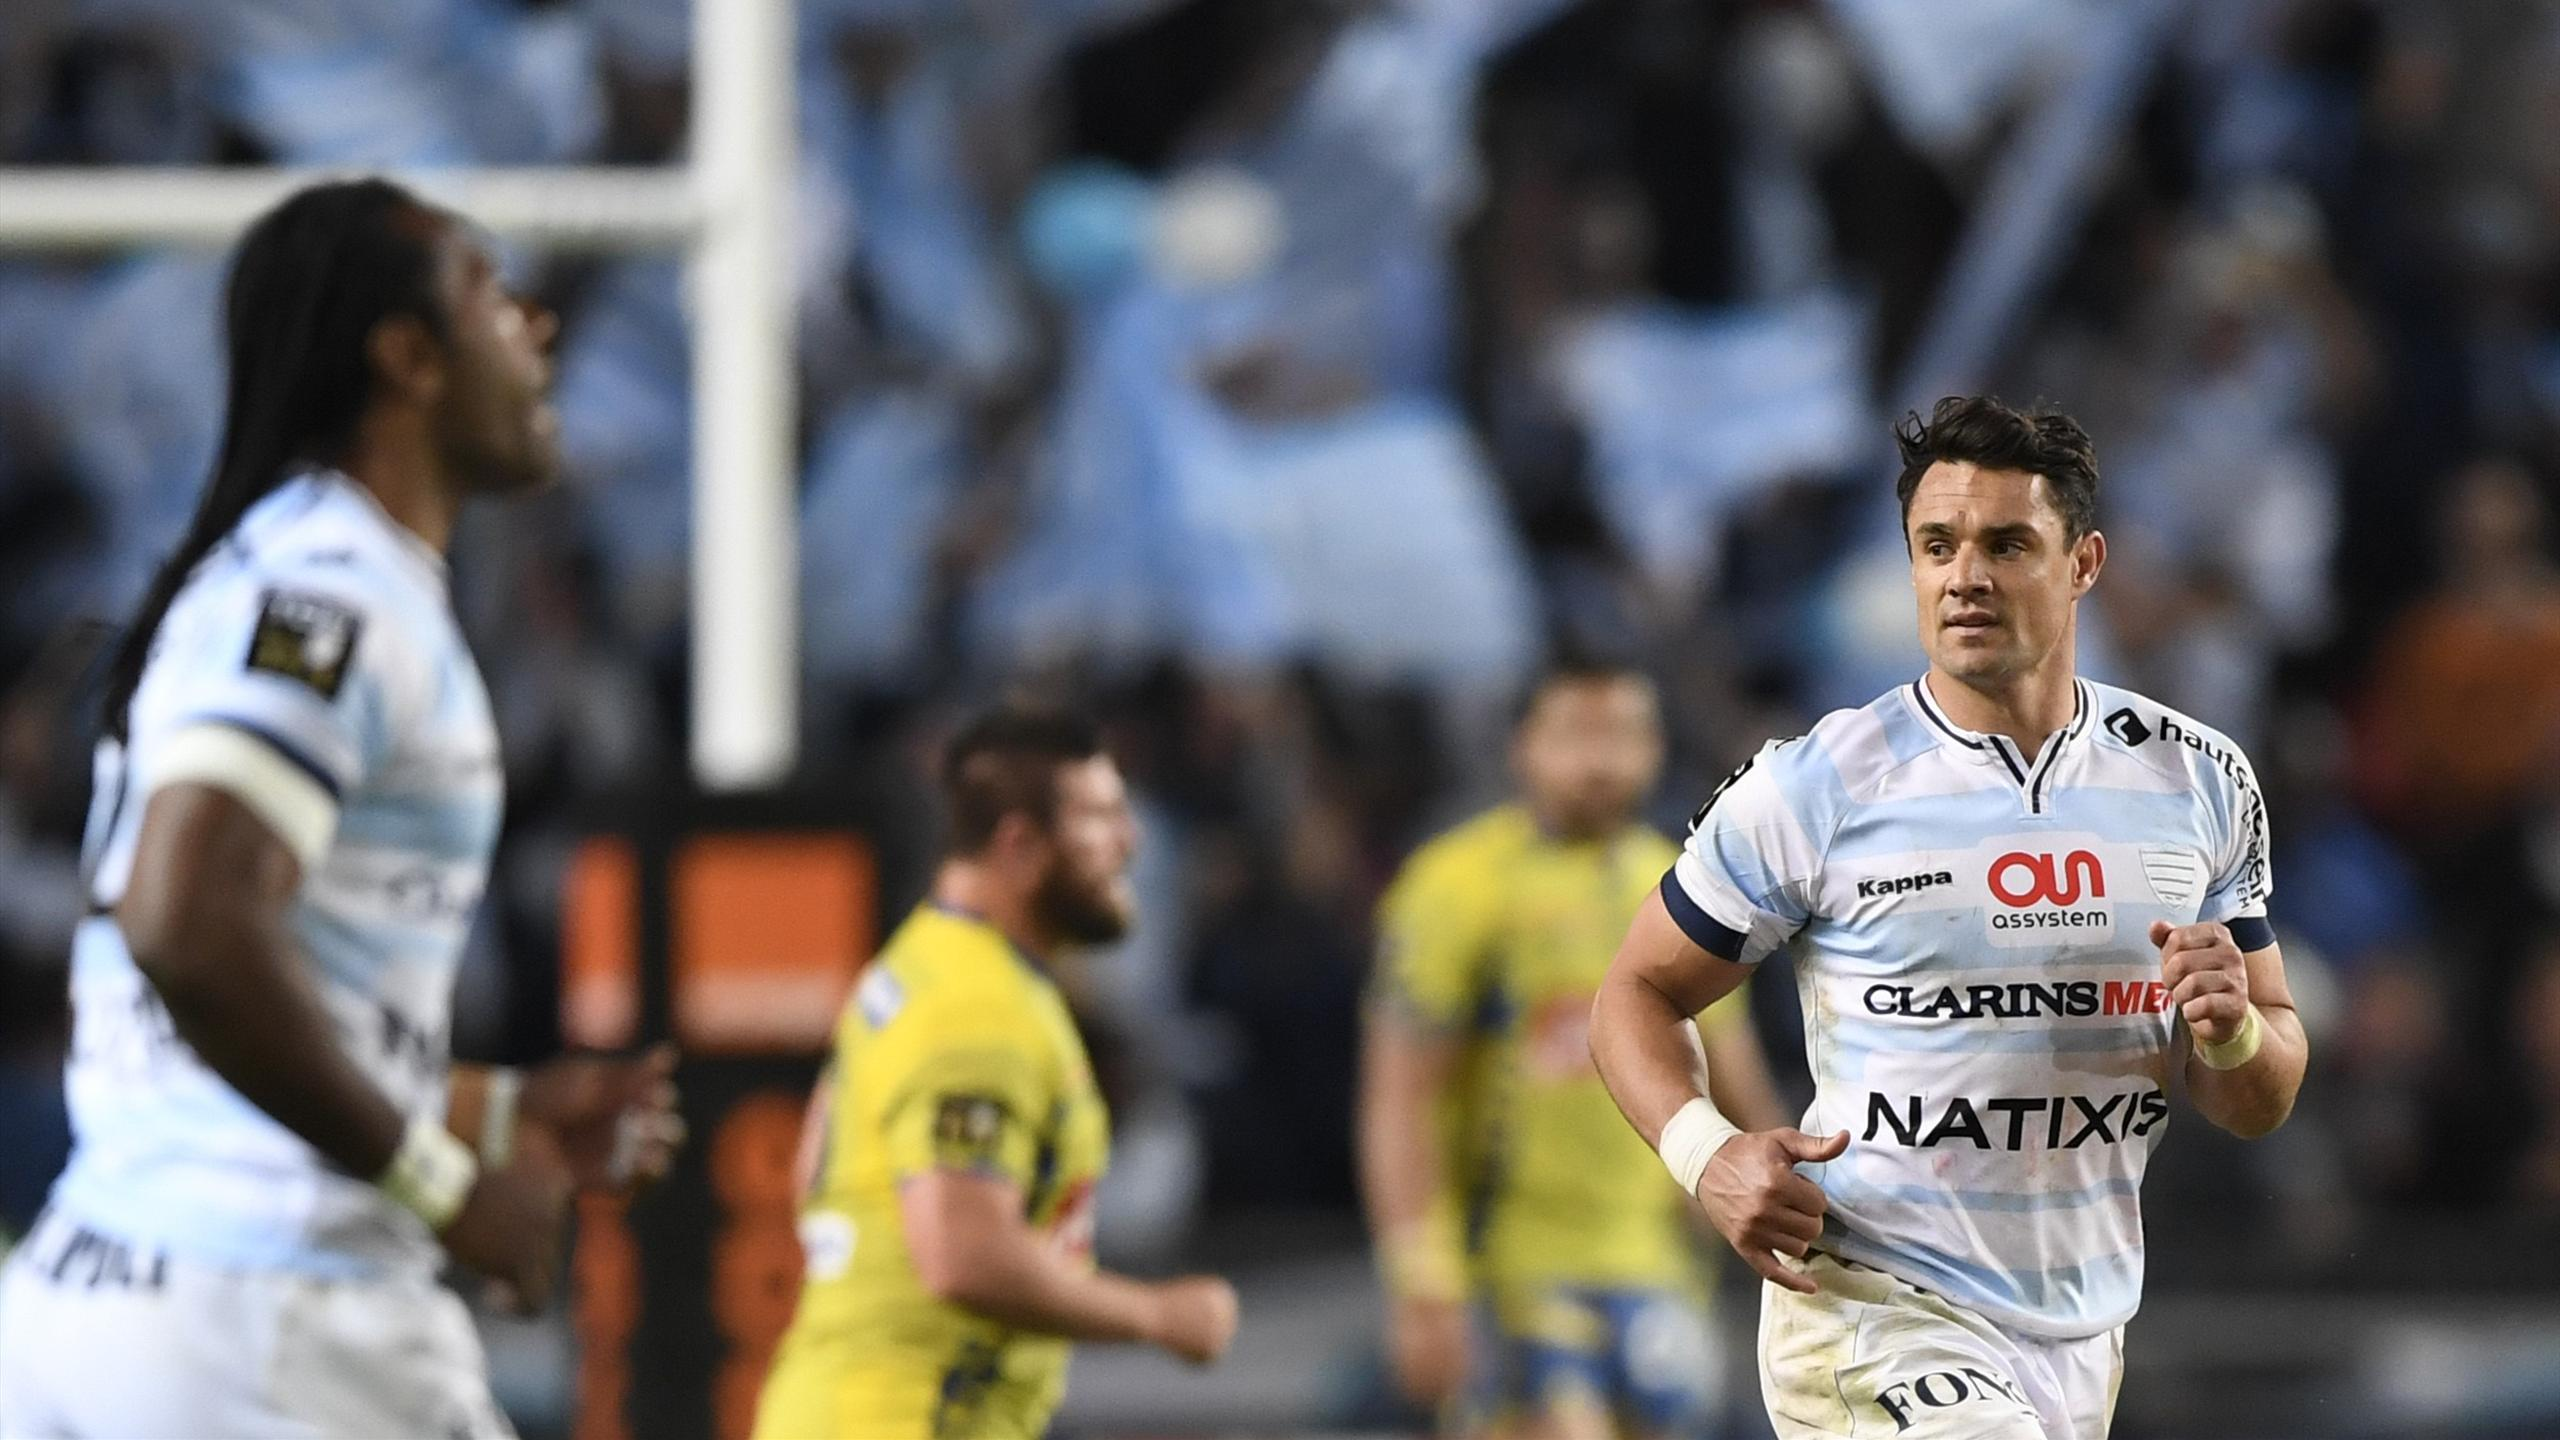 Dan Carter (Racing 92) - 17 juin 2016